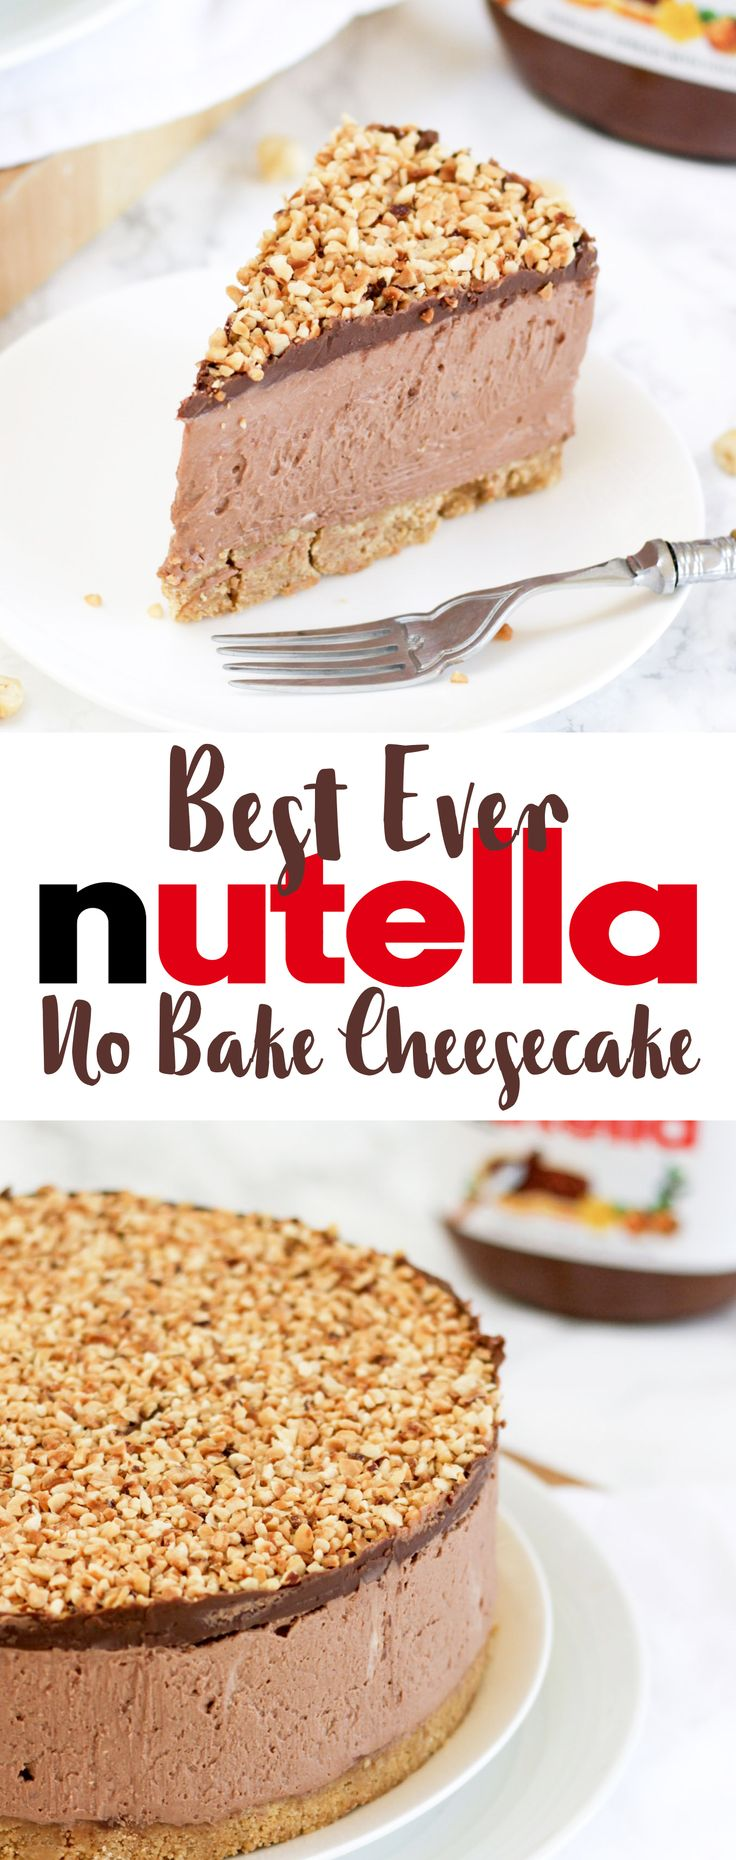 How to make the best ever NO BAKE NUTELLA CHEESECAKE! (With VIDEO tutorial!) This delicious cheesecake is the ultimate in Nutella, chocolate and hazelnut indulgence. This no bake dessert is quick and simple, easy enough for anyone!